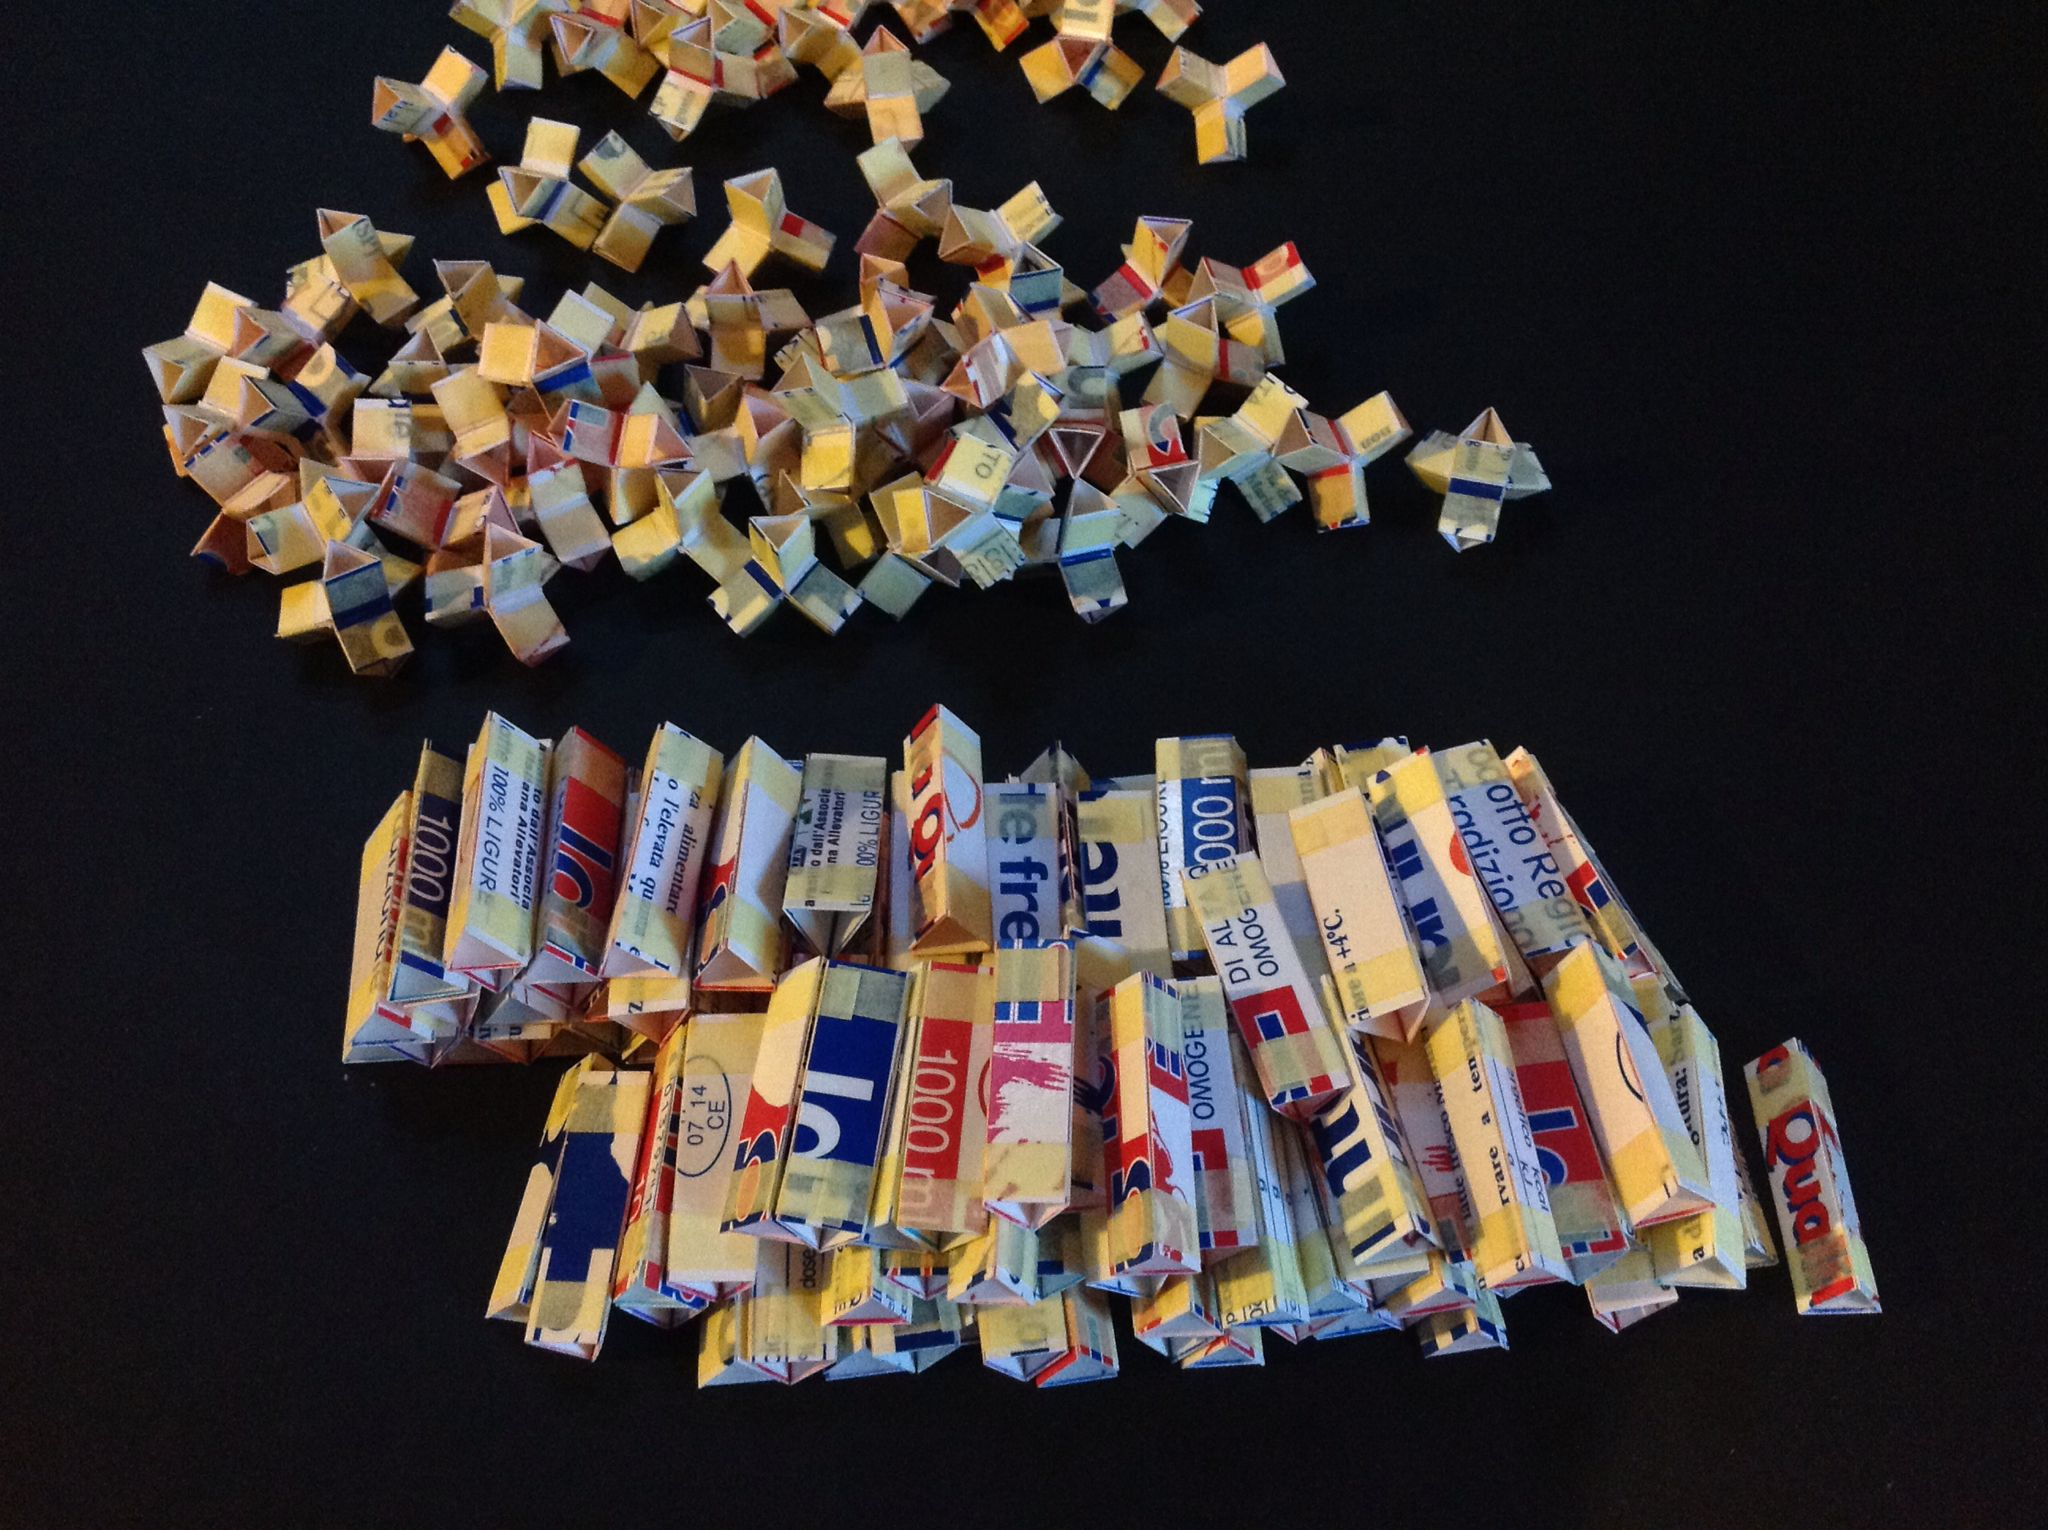 Space tiling toy. Crystallographers' toy. Up cycled milk cartons. DIY cubic honeycomb kit.